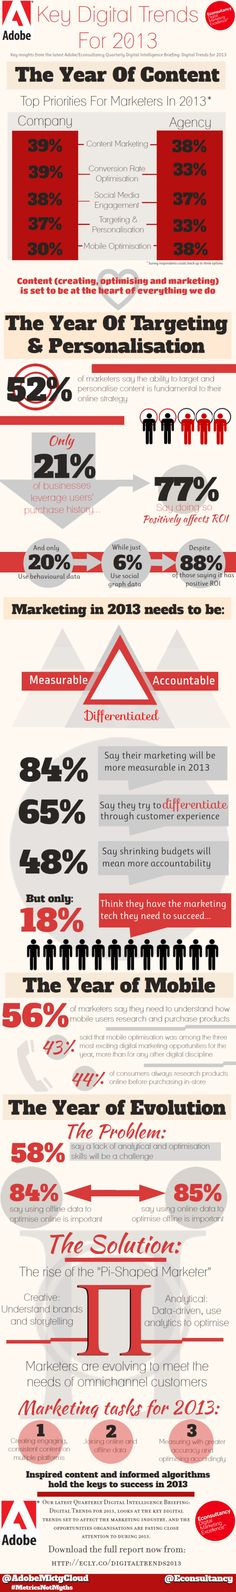 Key digital trends for 2013 [infographic] | Econsultancy